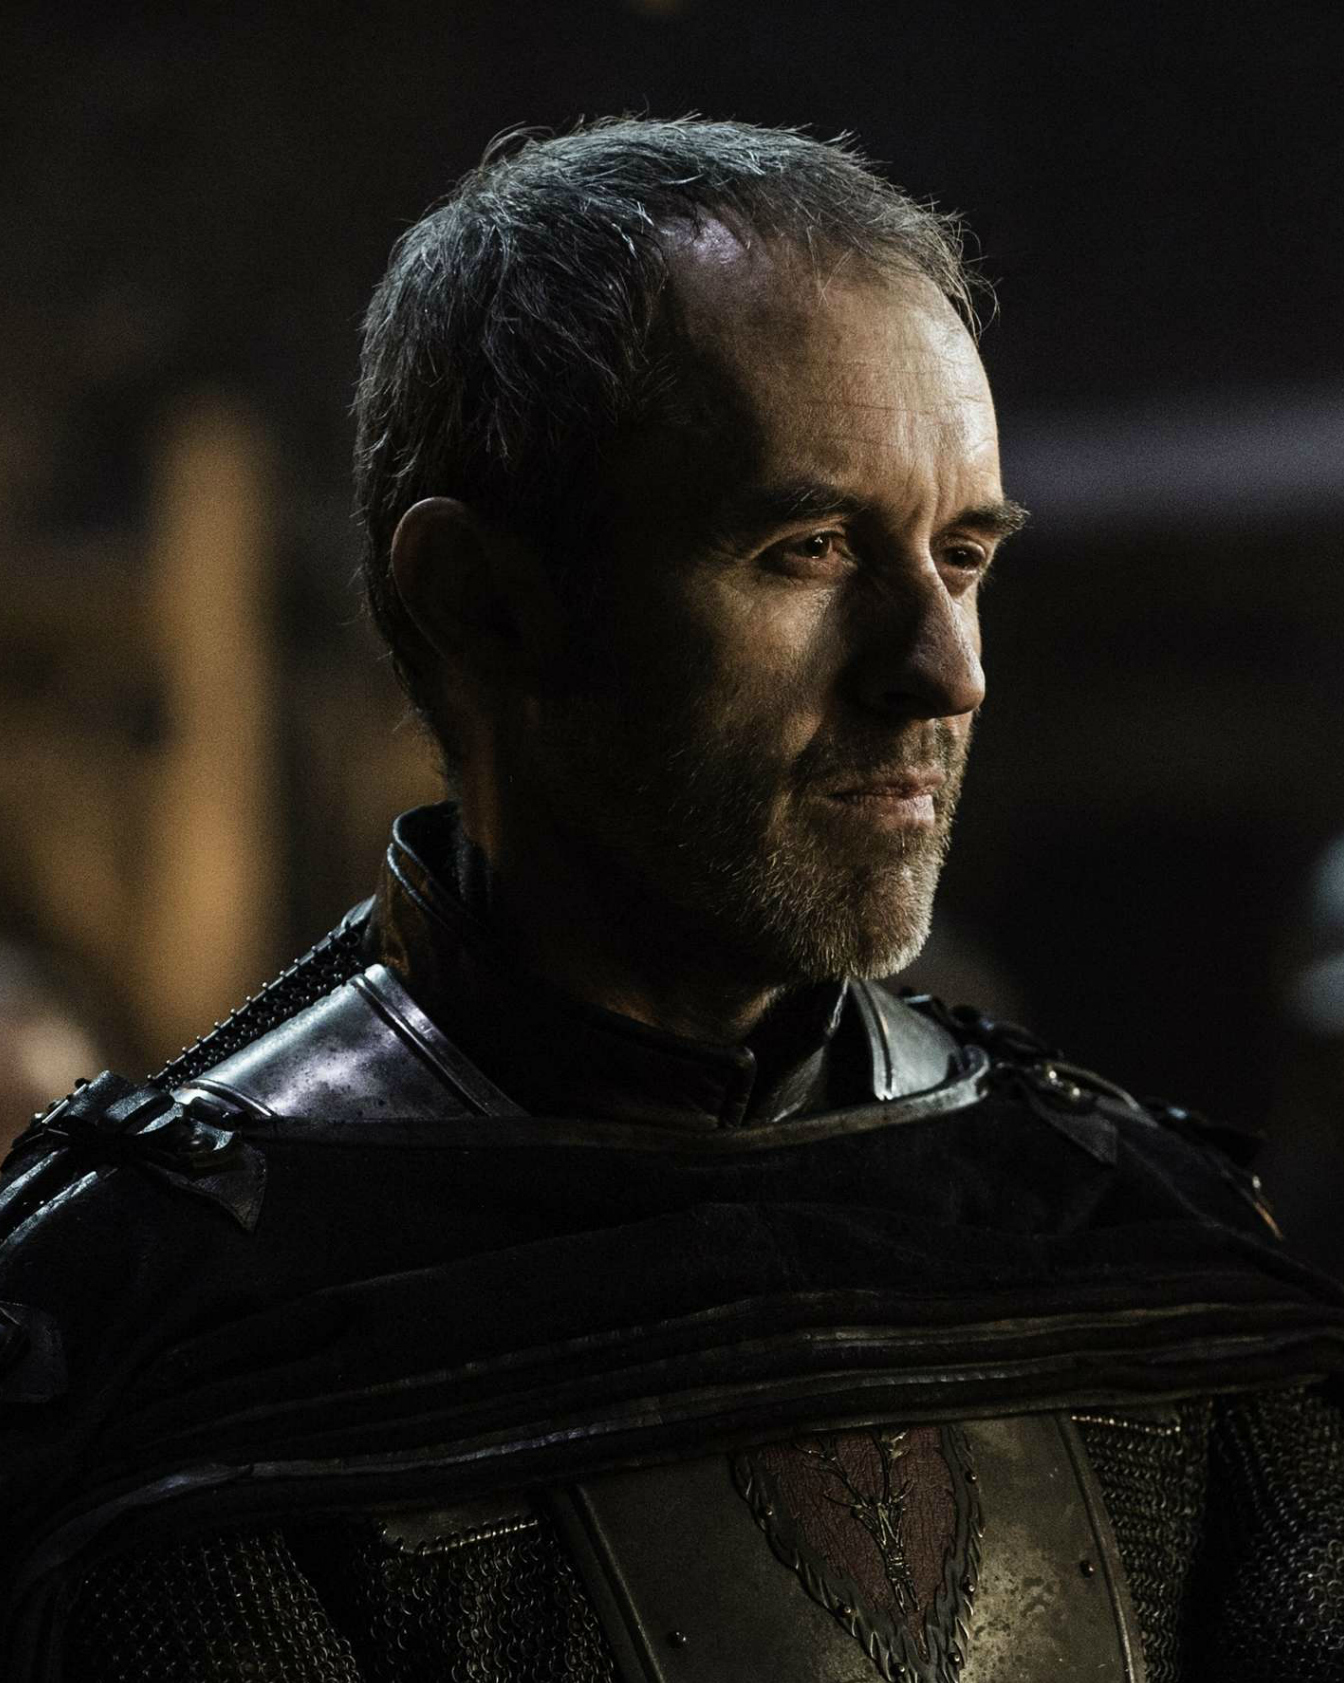 stannis baratheon s05e01. Black Bedroom Furniture Sets. Home Design Ideas